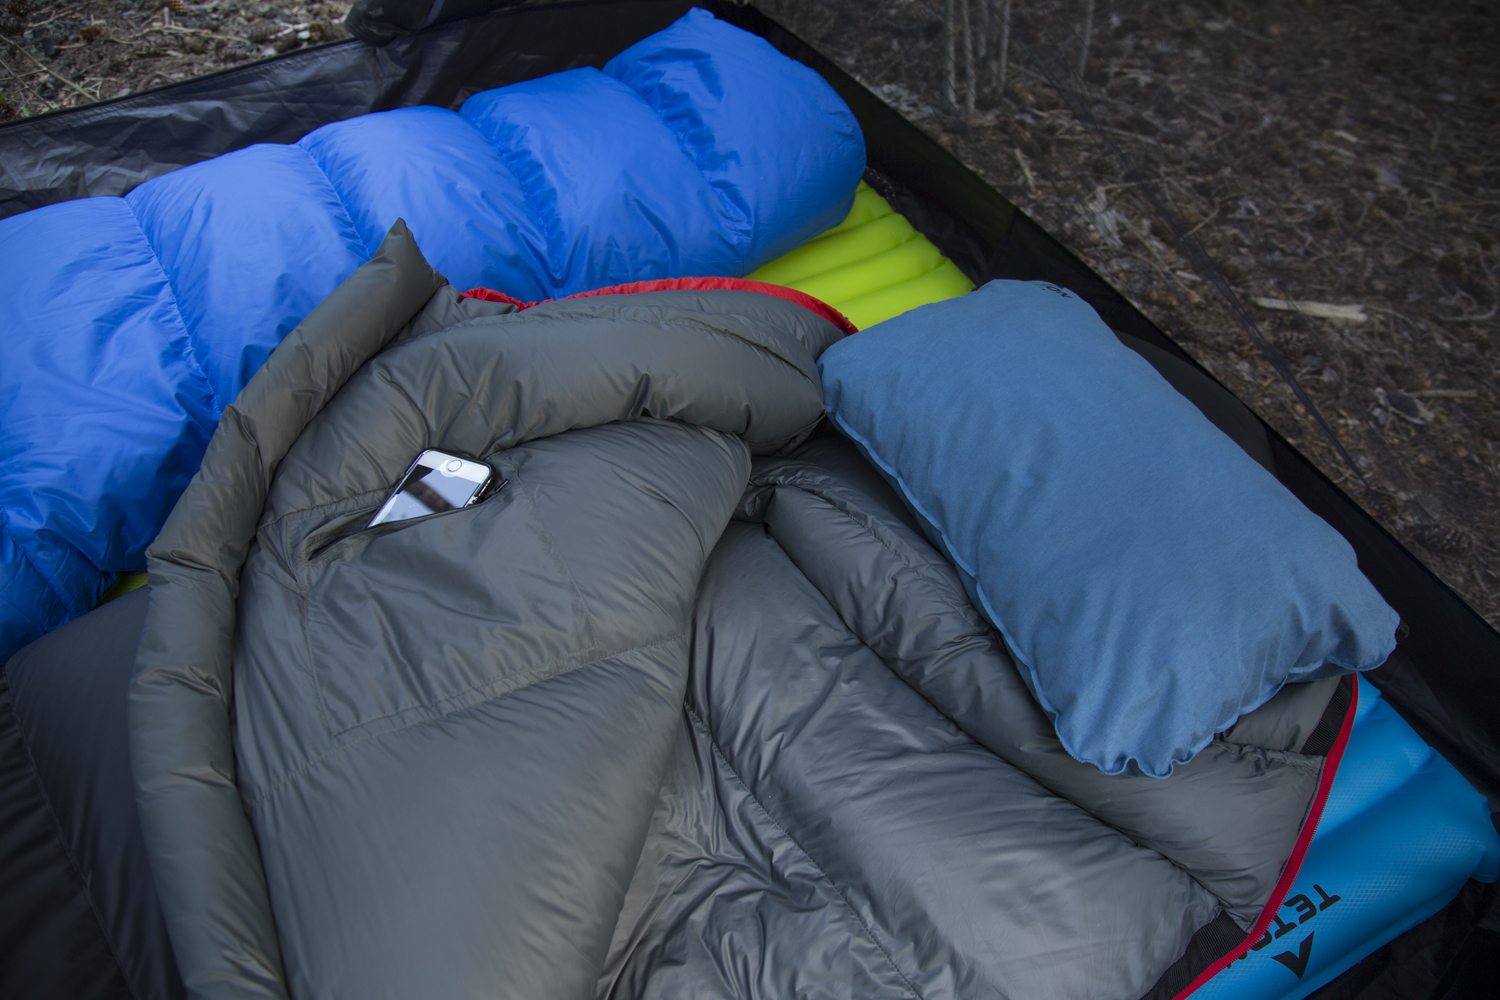 The Altos 0 performs well and is lightweight enough for almost any trek.